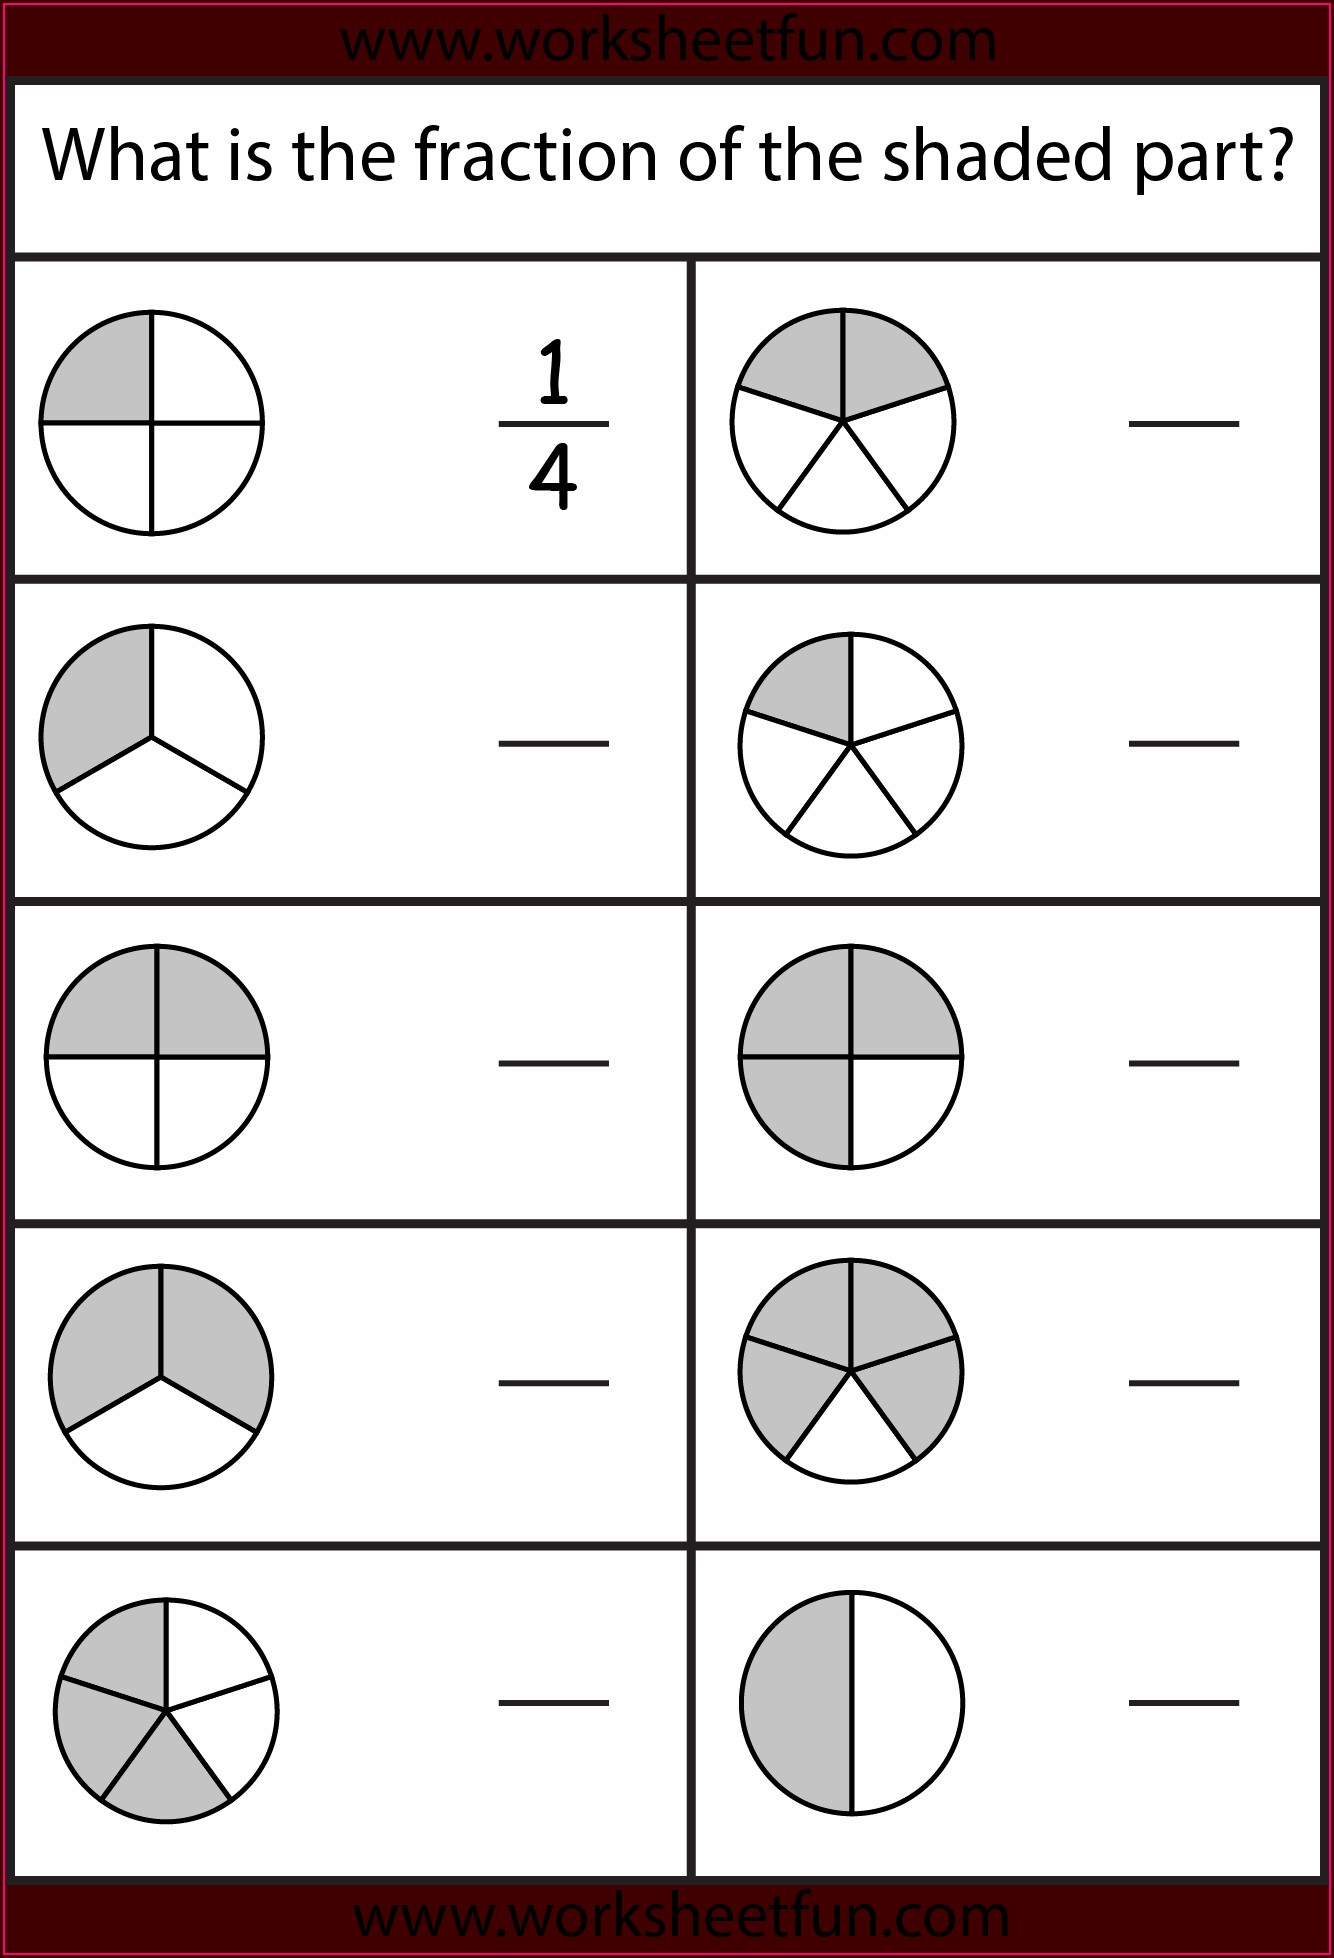 Worksheet On Fractions For Grade 4